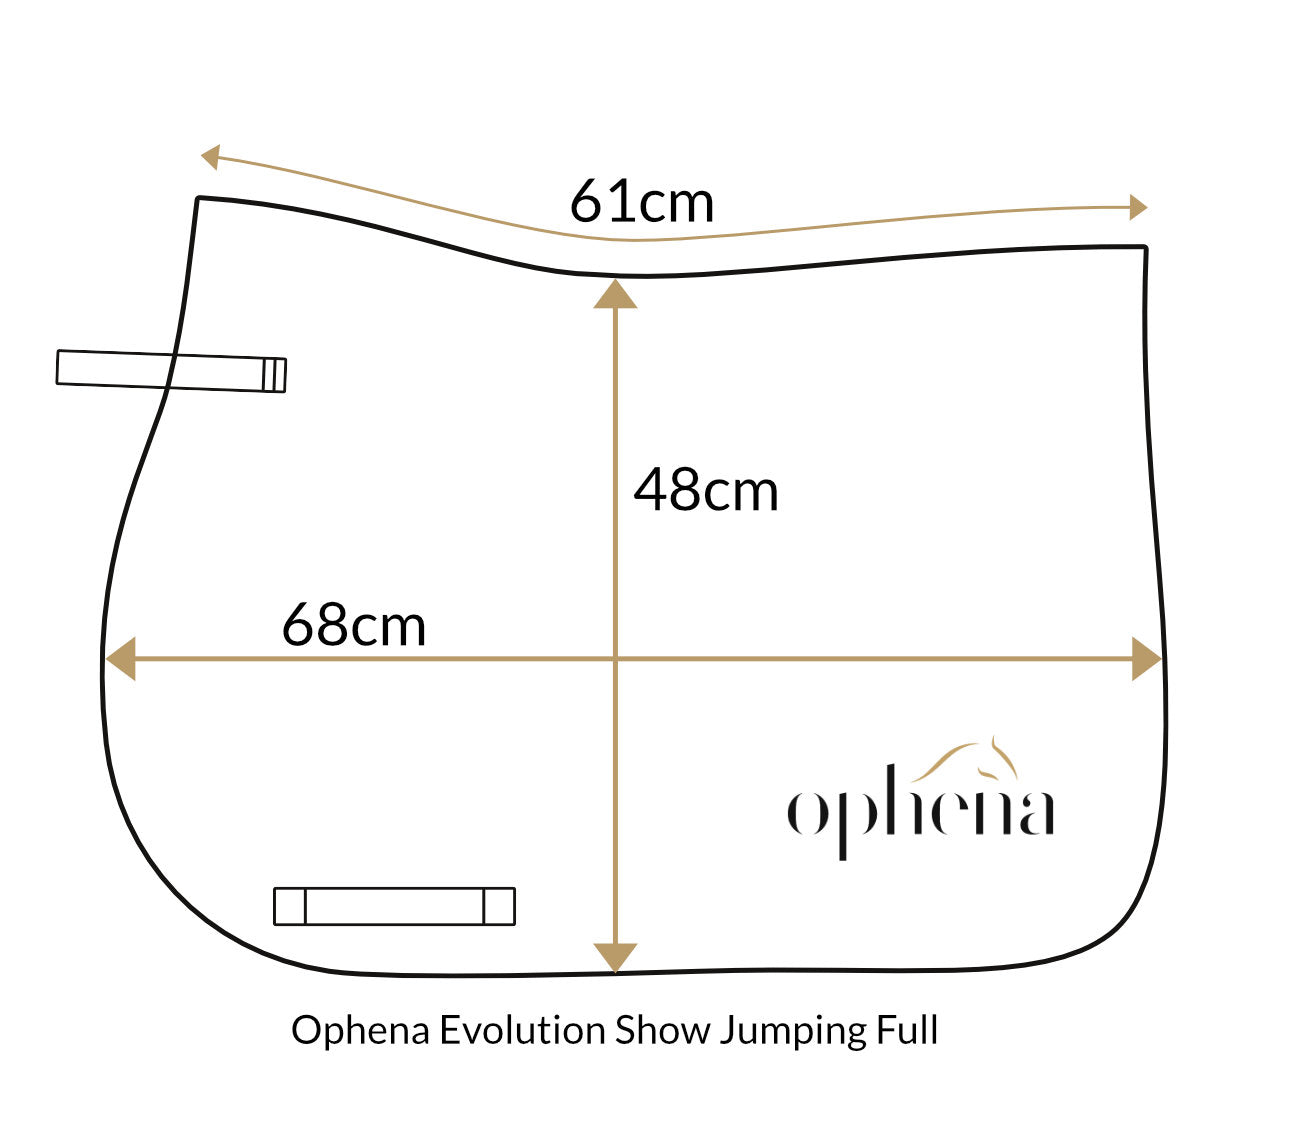 Ophena Evolution Show Jumping Full